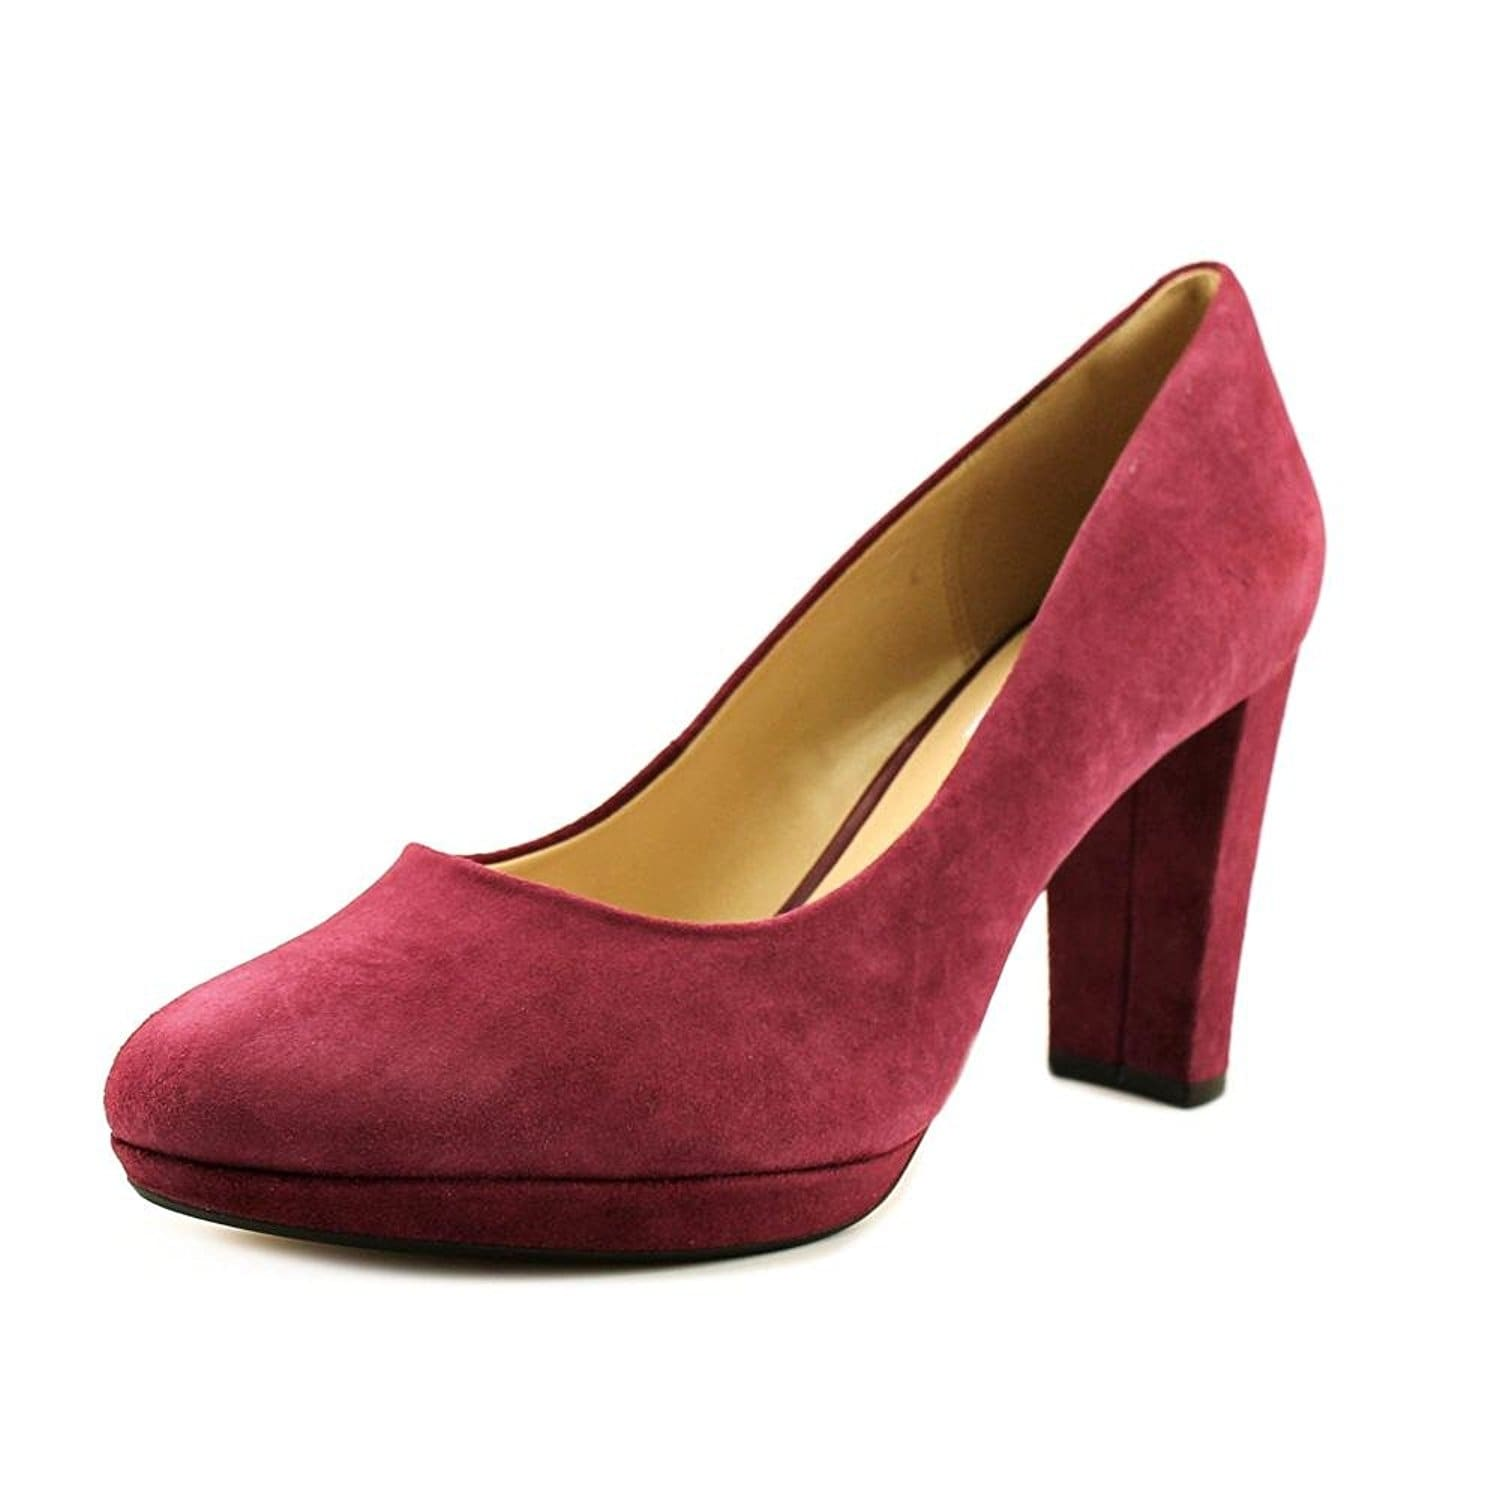 ba464db5e4f1 Shop CLARKS Womens Kendra Sienna Leather Closed Toe Platform Pumps ...